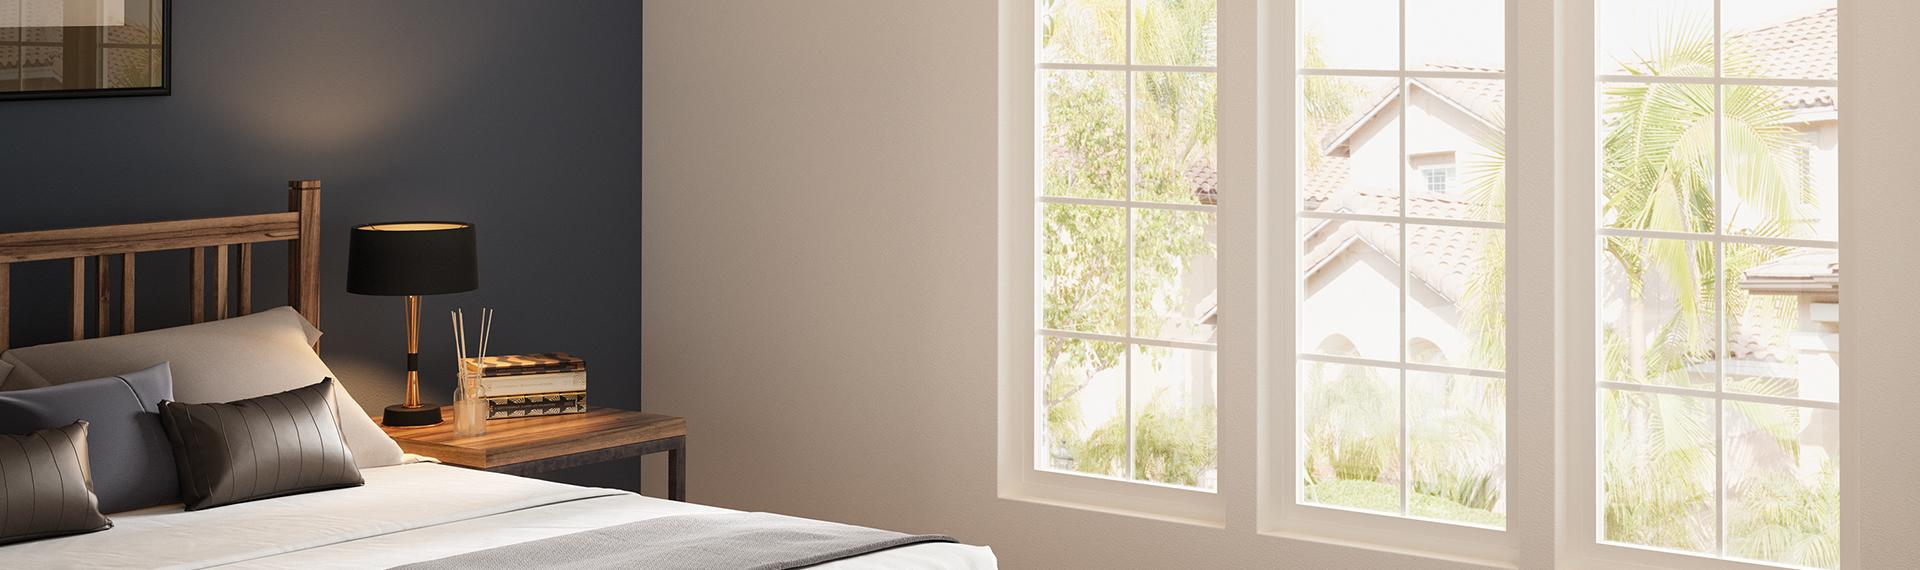 Trinsic Series windows with grids